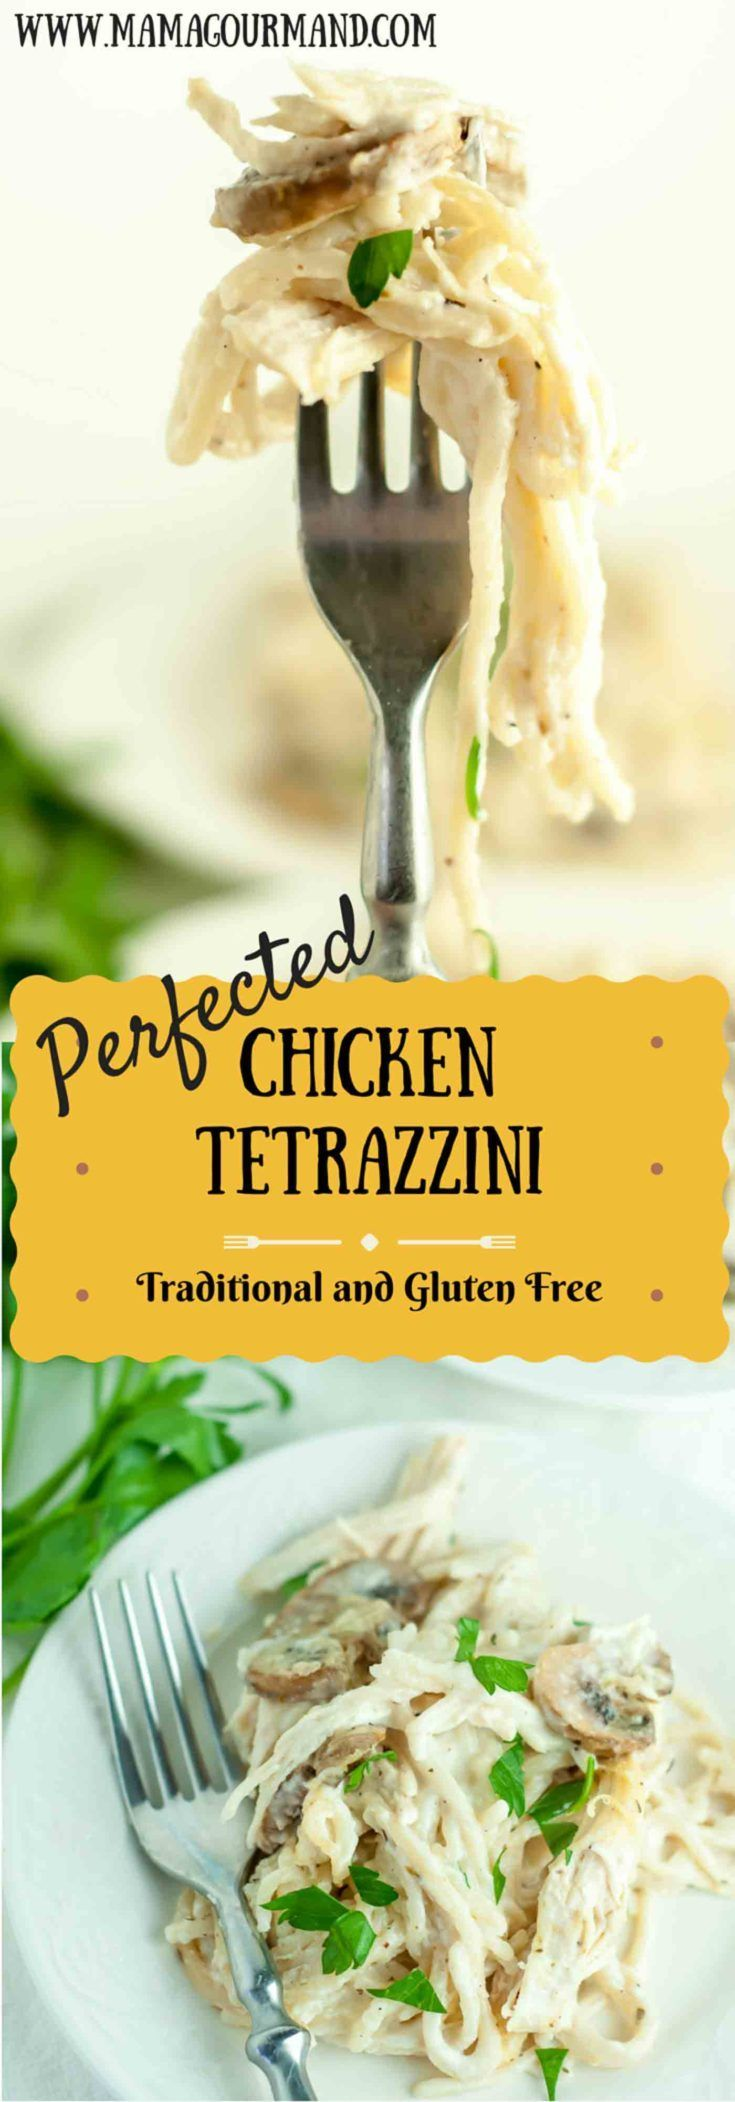 Chicken Tetrazzini is a definite crowd favorite meal. This recipe was perfected through years of making it, and you will not find a better version! Gluten free directions included, so all can enjoy! www.mamagourmand.com